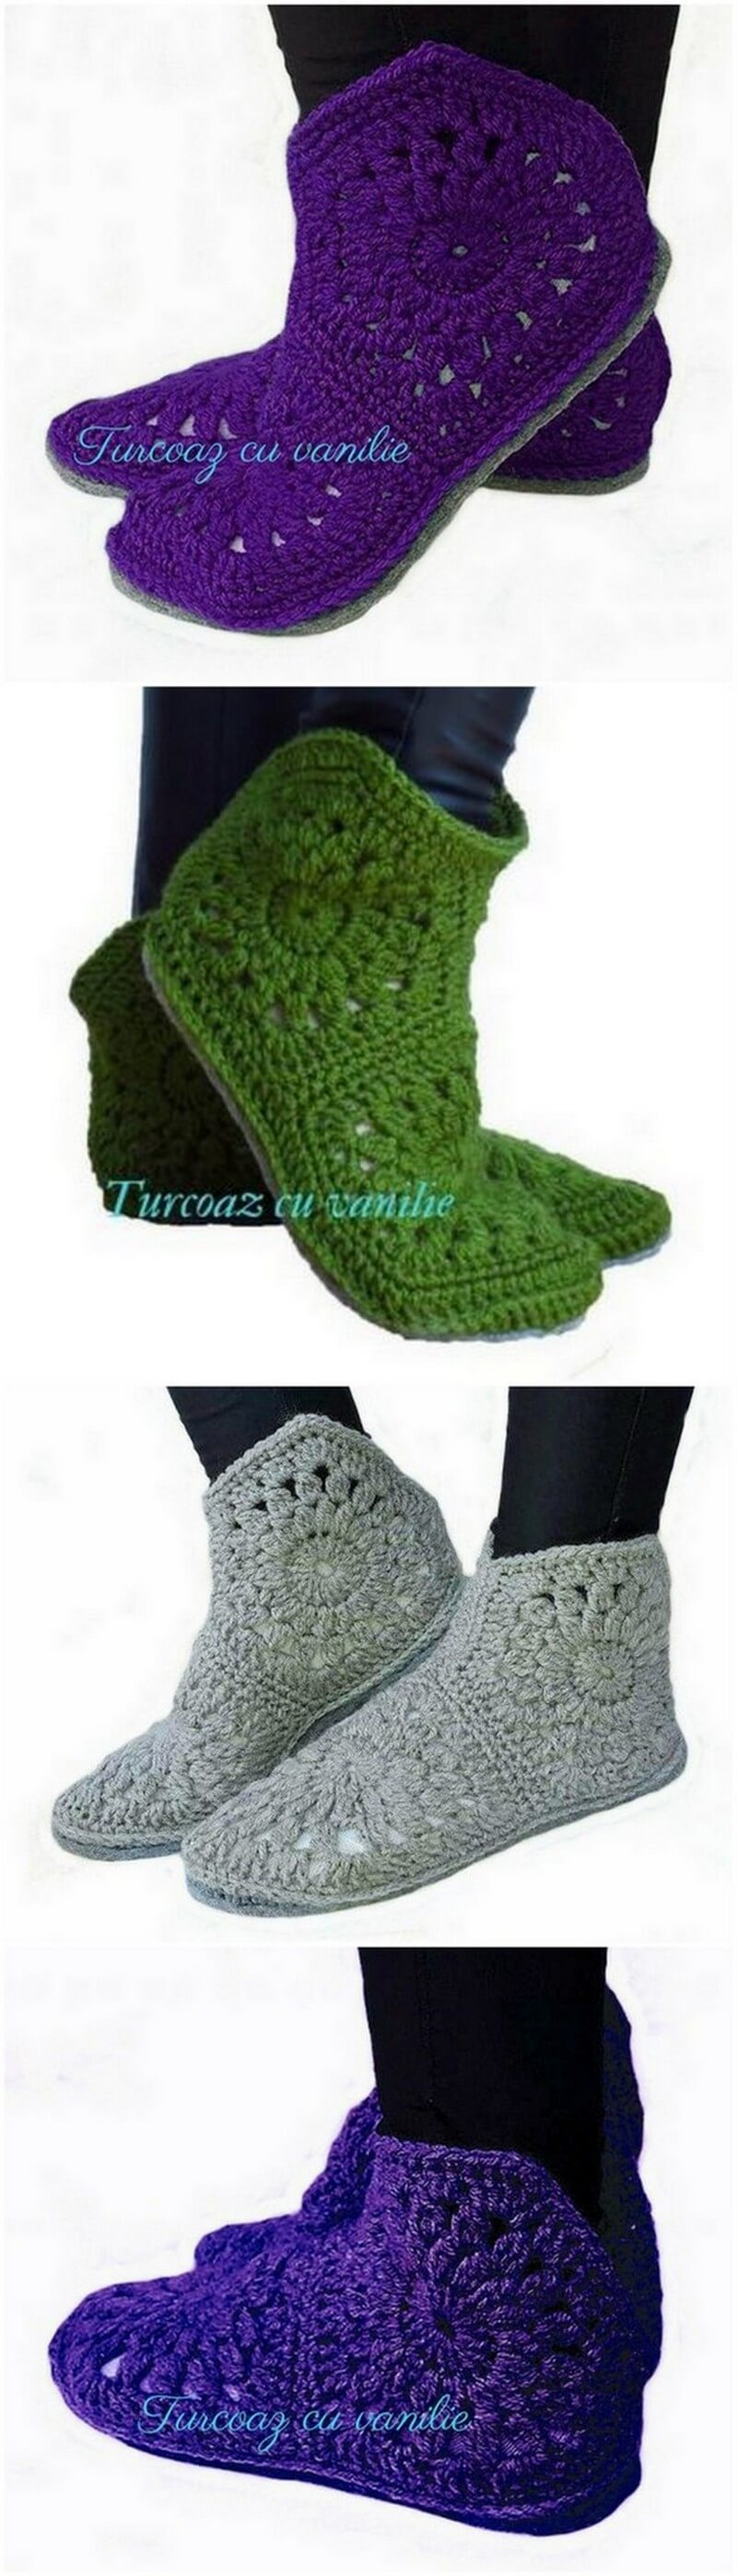 Crochet Slipper Pattern (19)